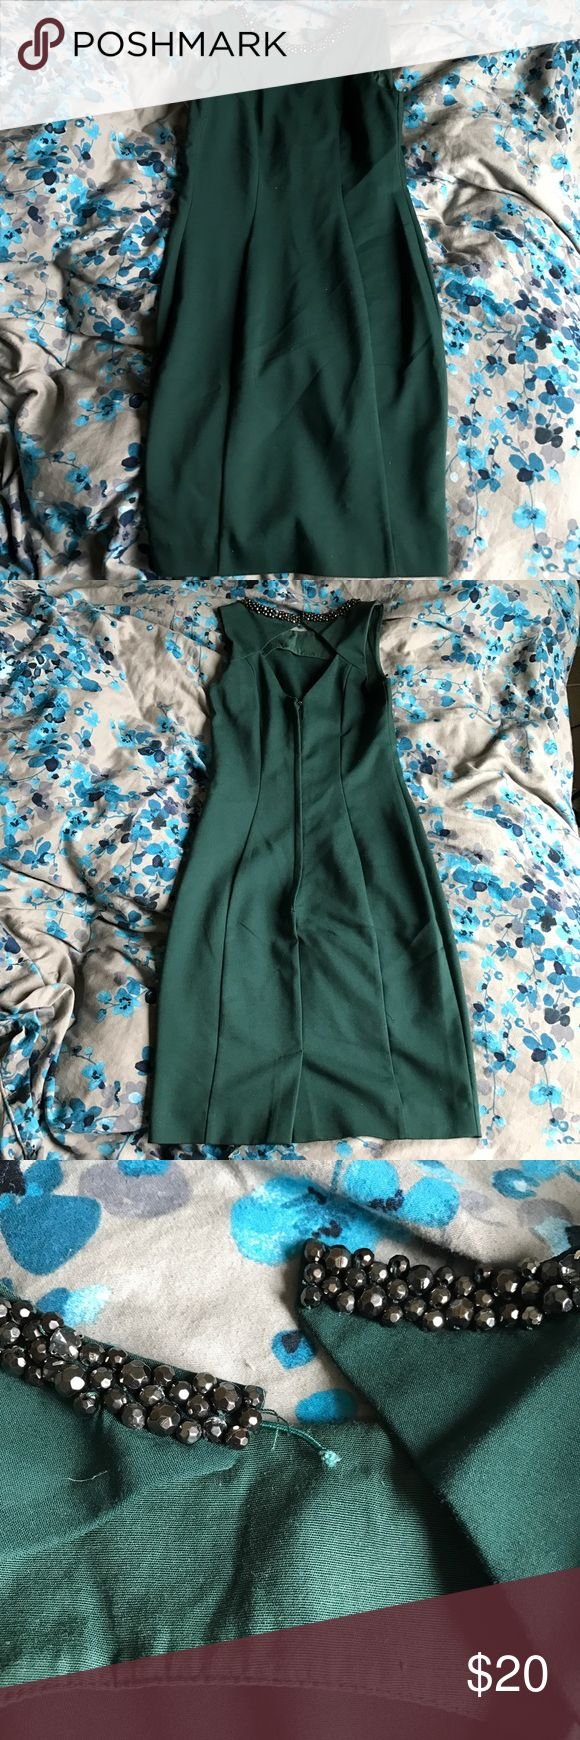 H&M dark green bodycon dress with jeweled collar Dark green dress with details around the collar from h&m. Size 4. Worn once and washed. The only flaw is that the band for the top button broke off on one end (see 3rd picture), but it should be an easy fix. Back zipper is in excellent condition. H&M Dresses Mini